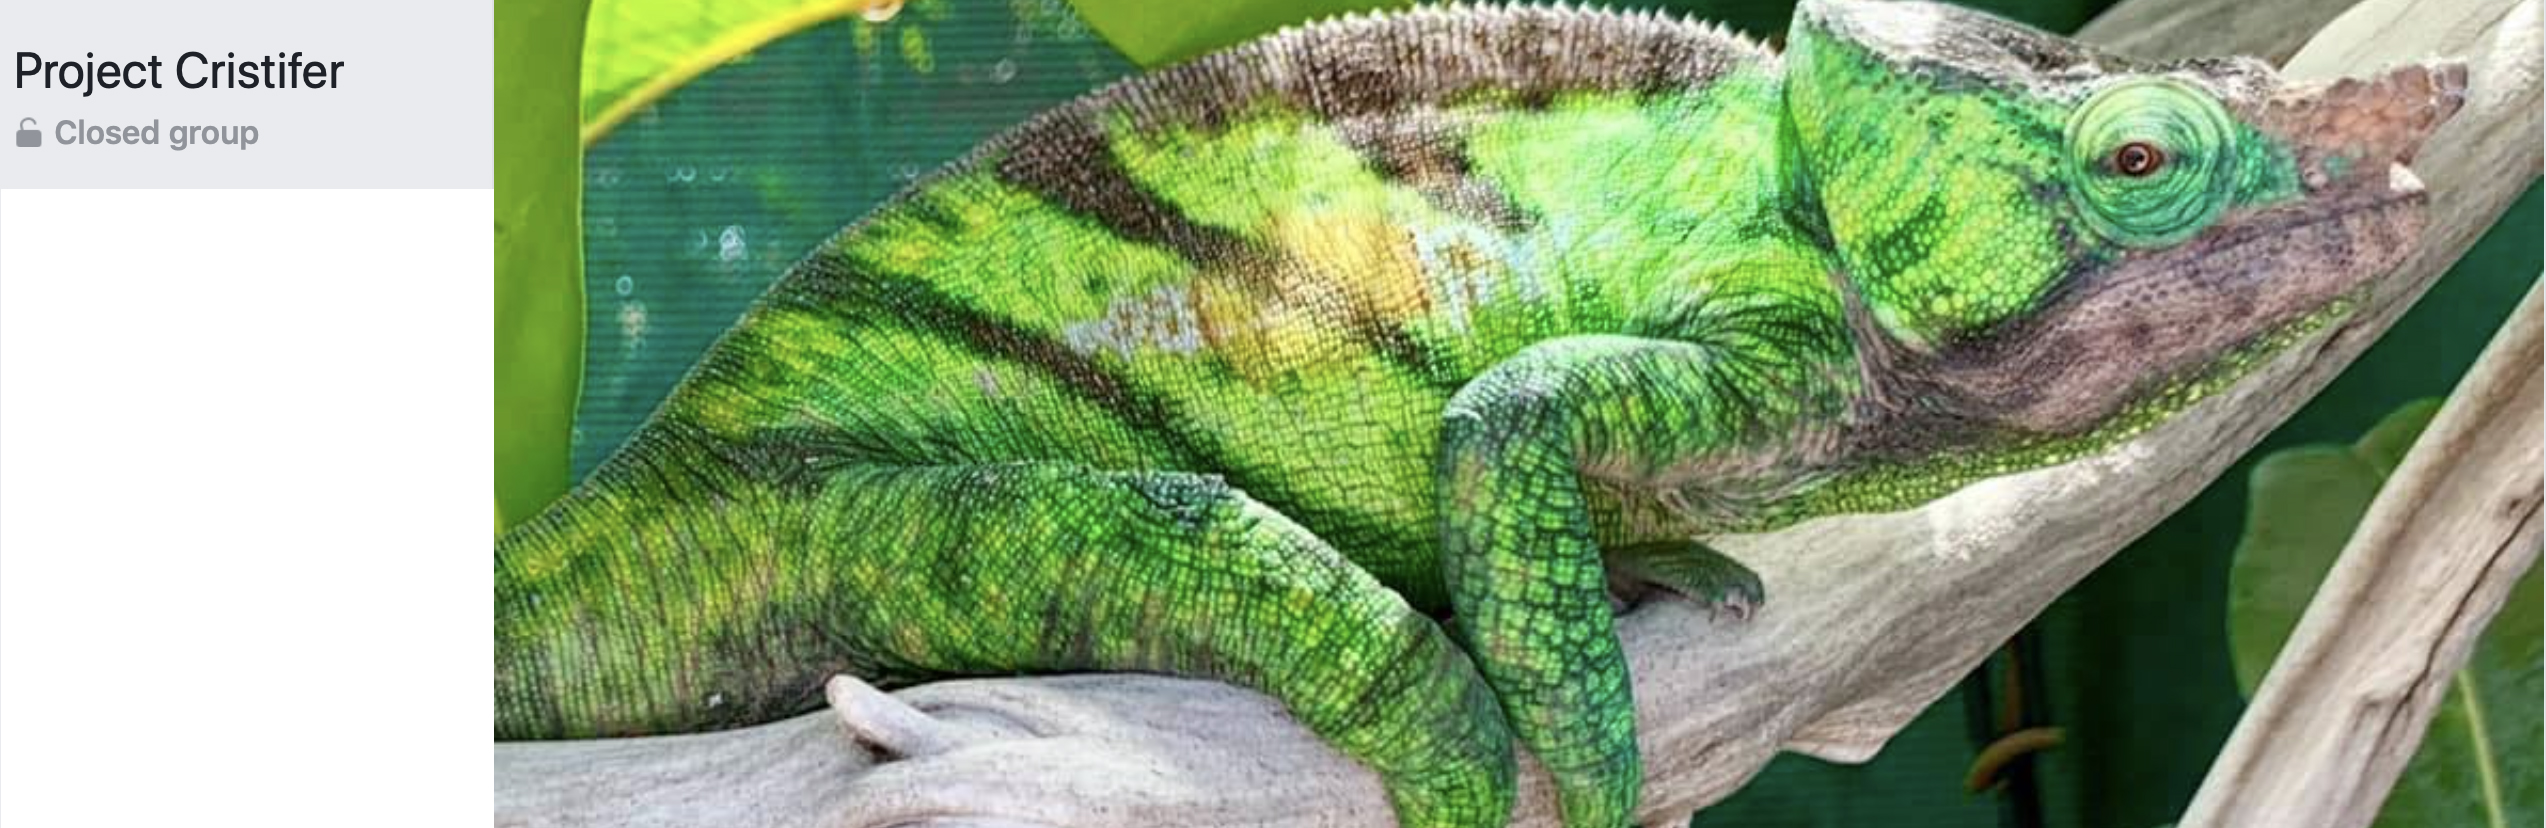 Parsons cristifer chameleon Facebook group